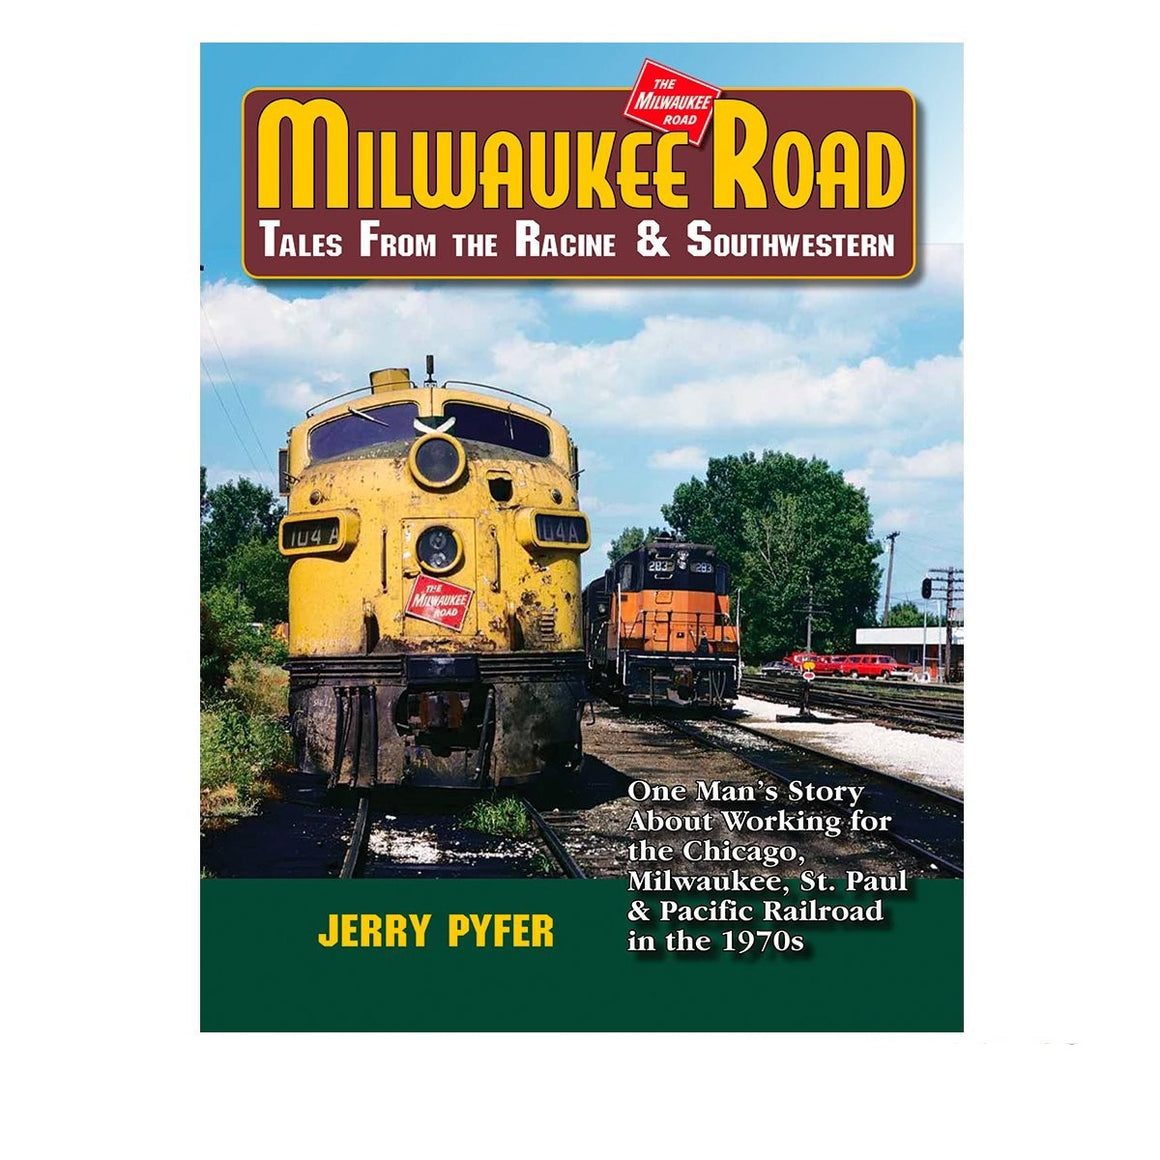 Book: Milwaukee Road Tales from the Racine & Southwestern